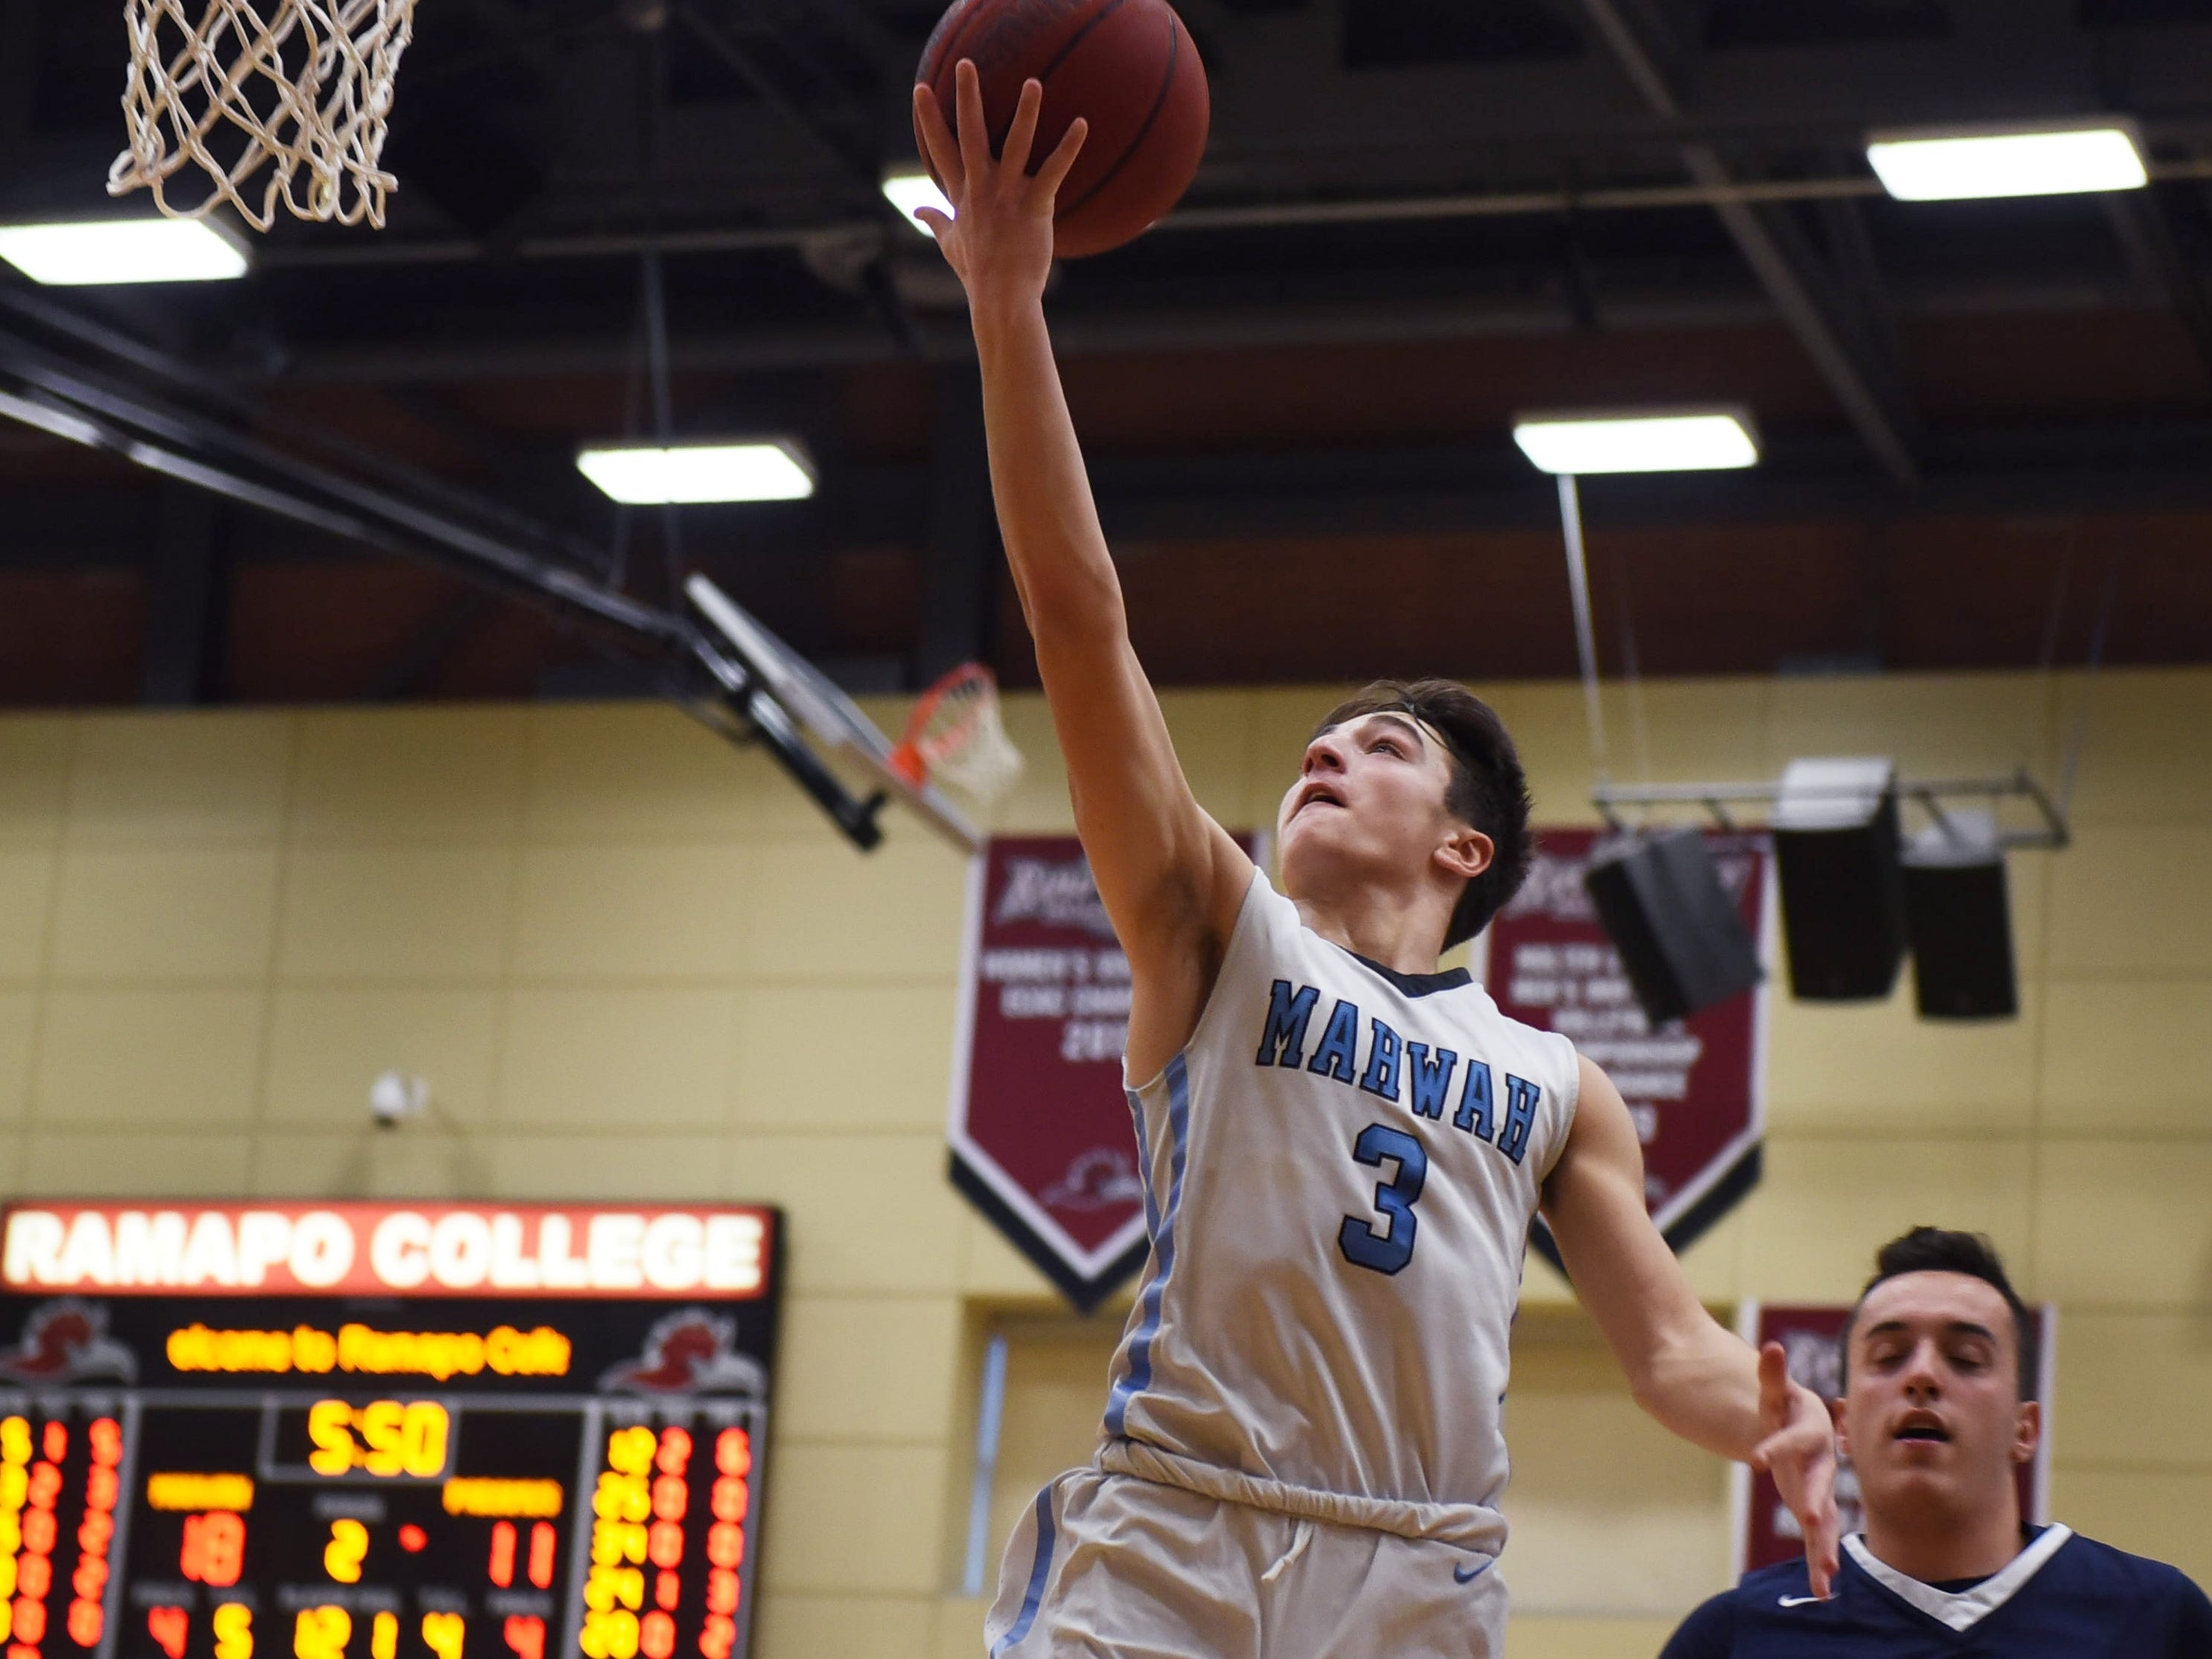 Nicky Peiteklan (no.3) of Mahwah (in white) goes to basket     in the first half during the Randy Chave Tip-Off boys basketball at Ramapo College in Mahwah on 12/16/18.